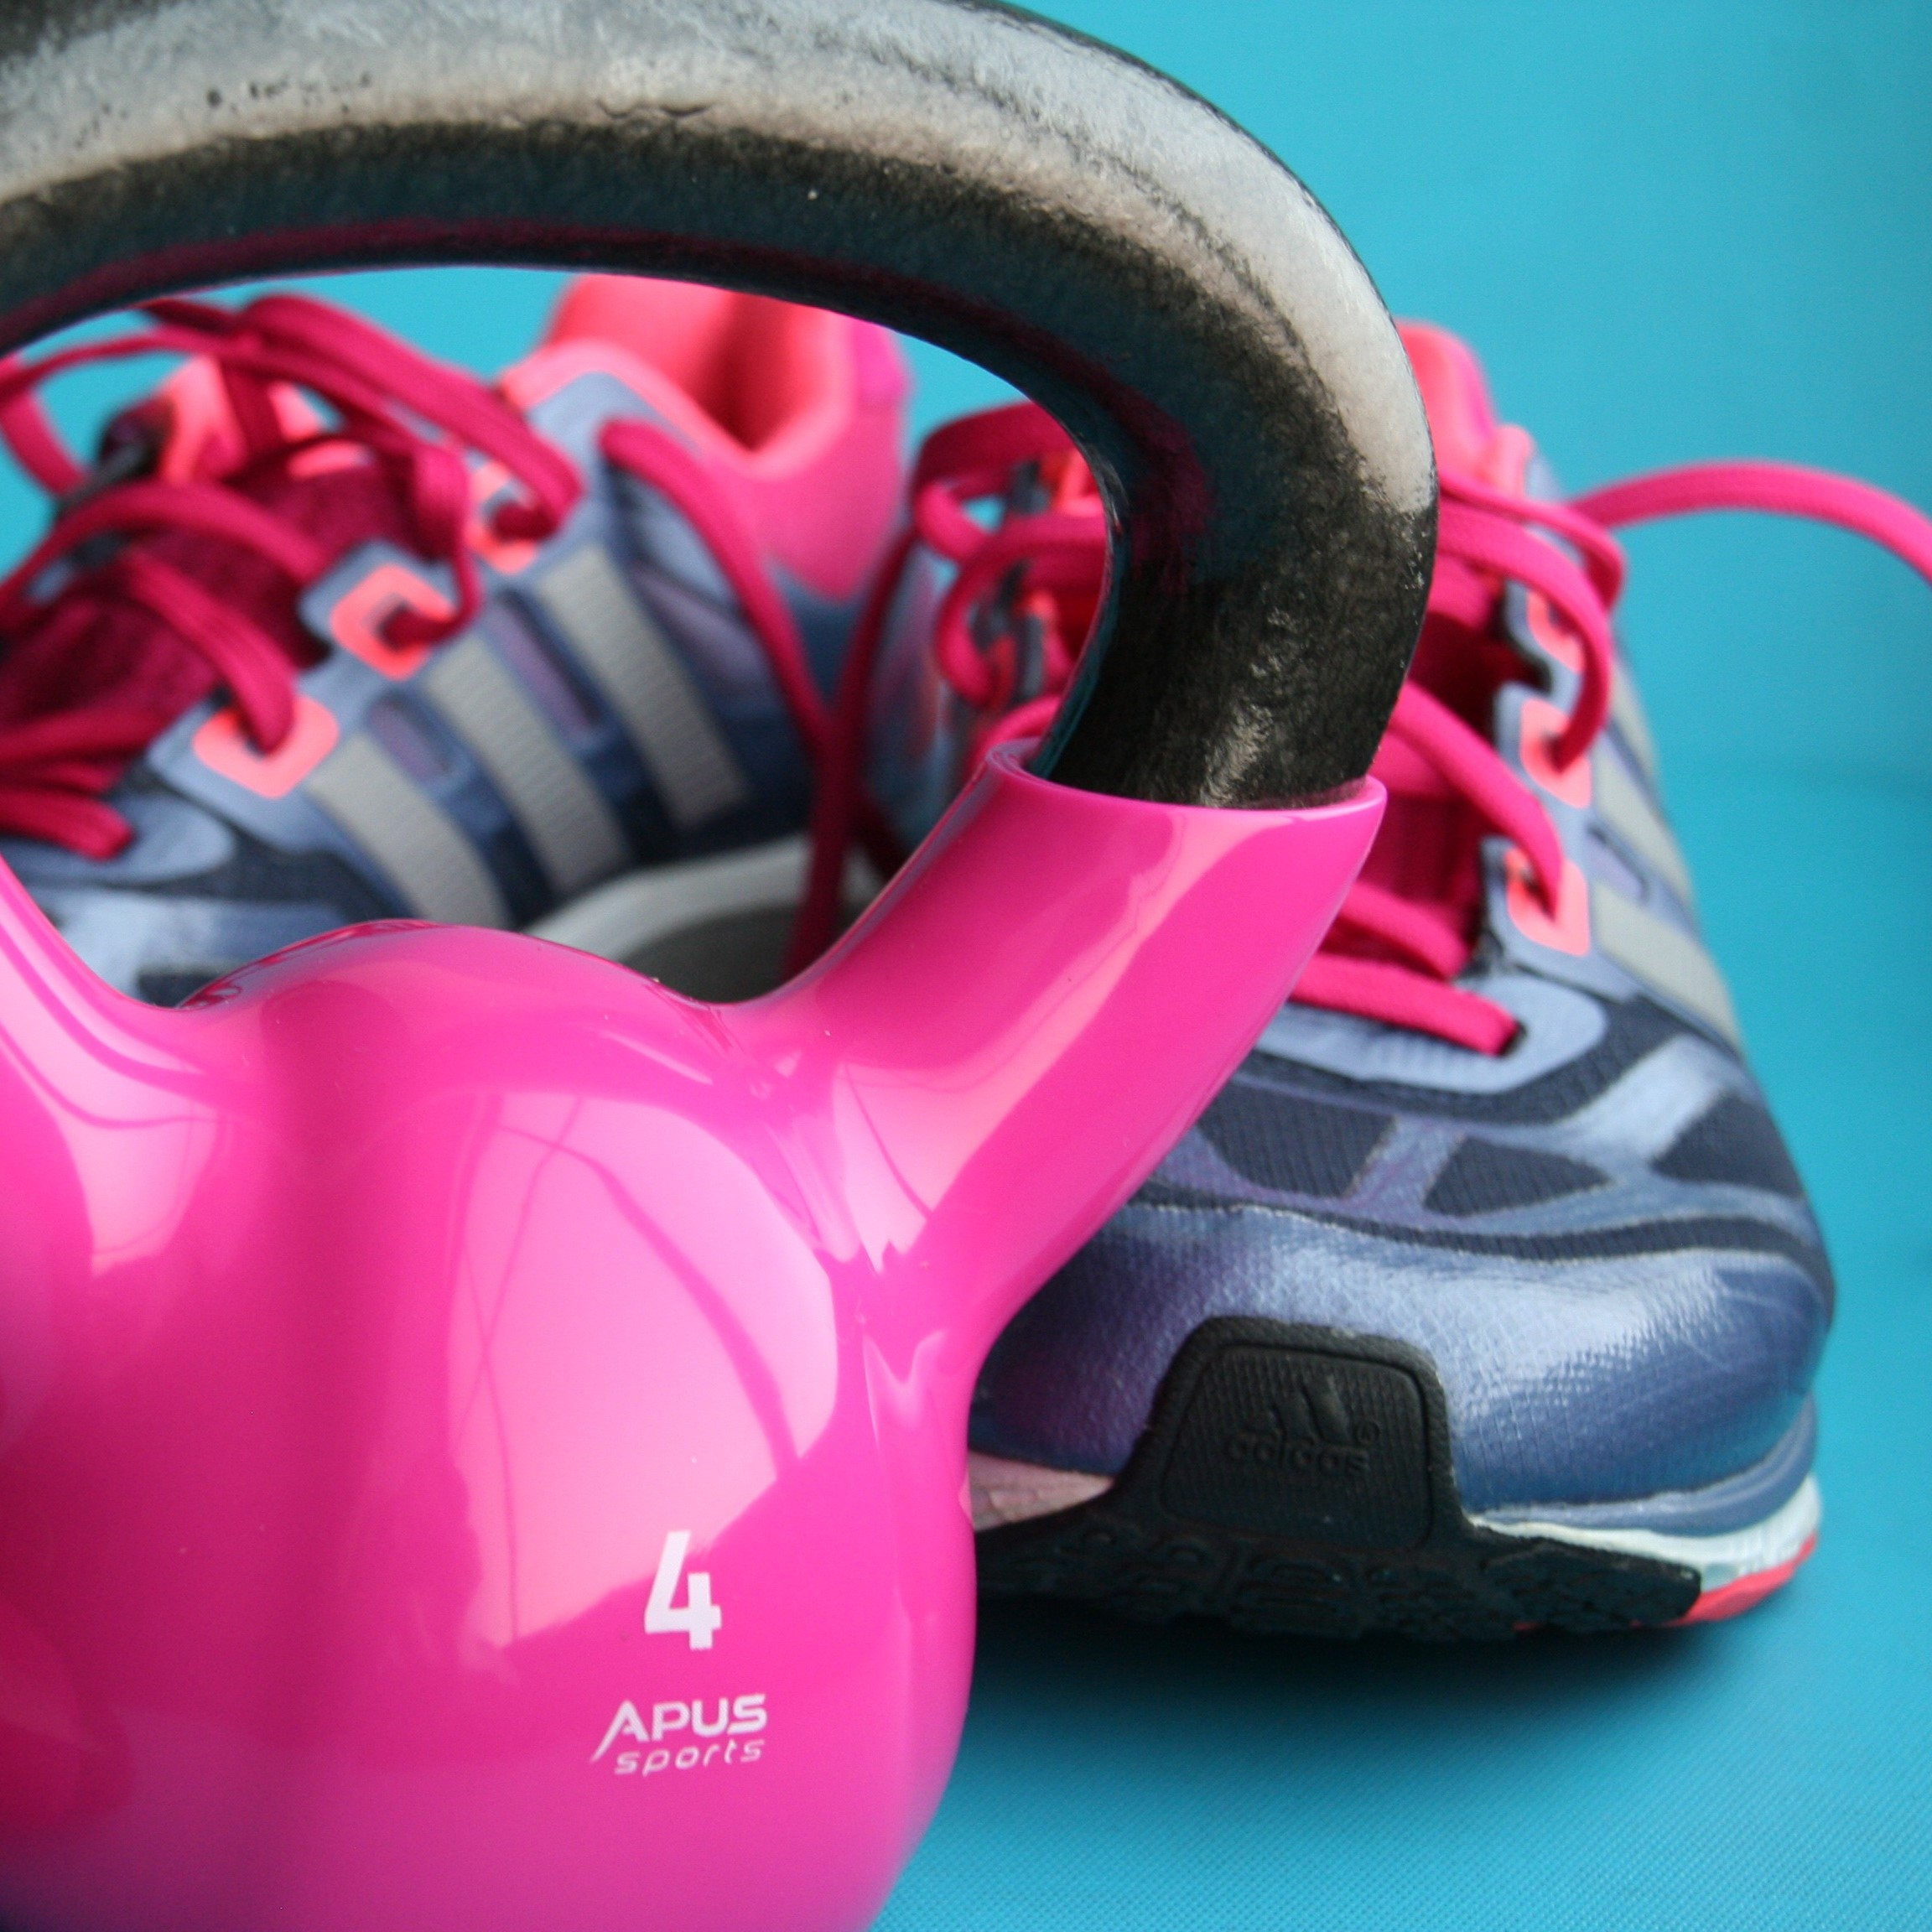 Pink kettle bell with a pair of blue and pink sneakers in the background